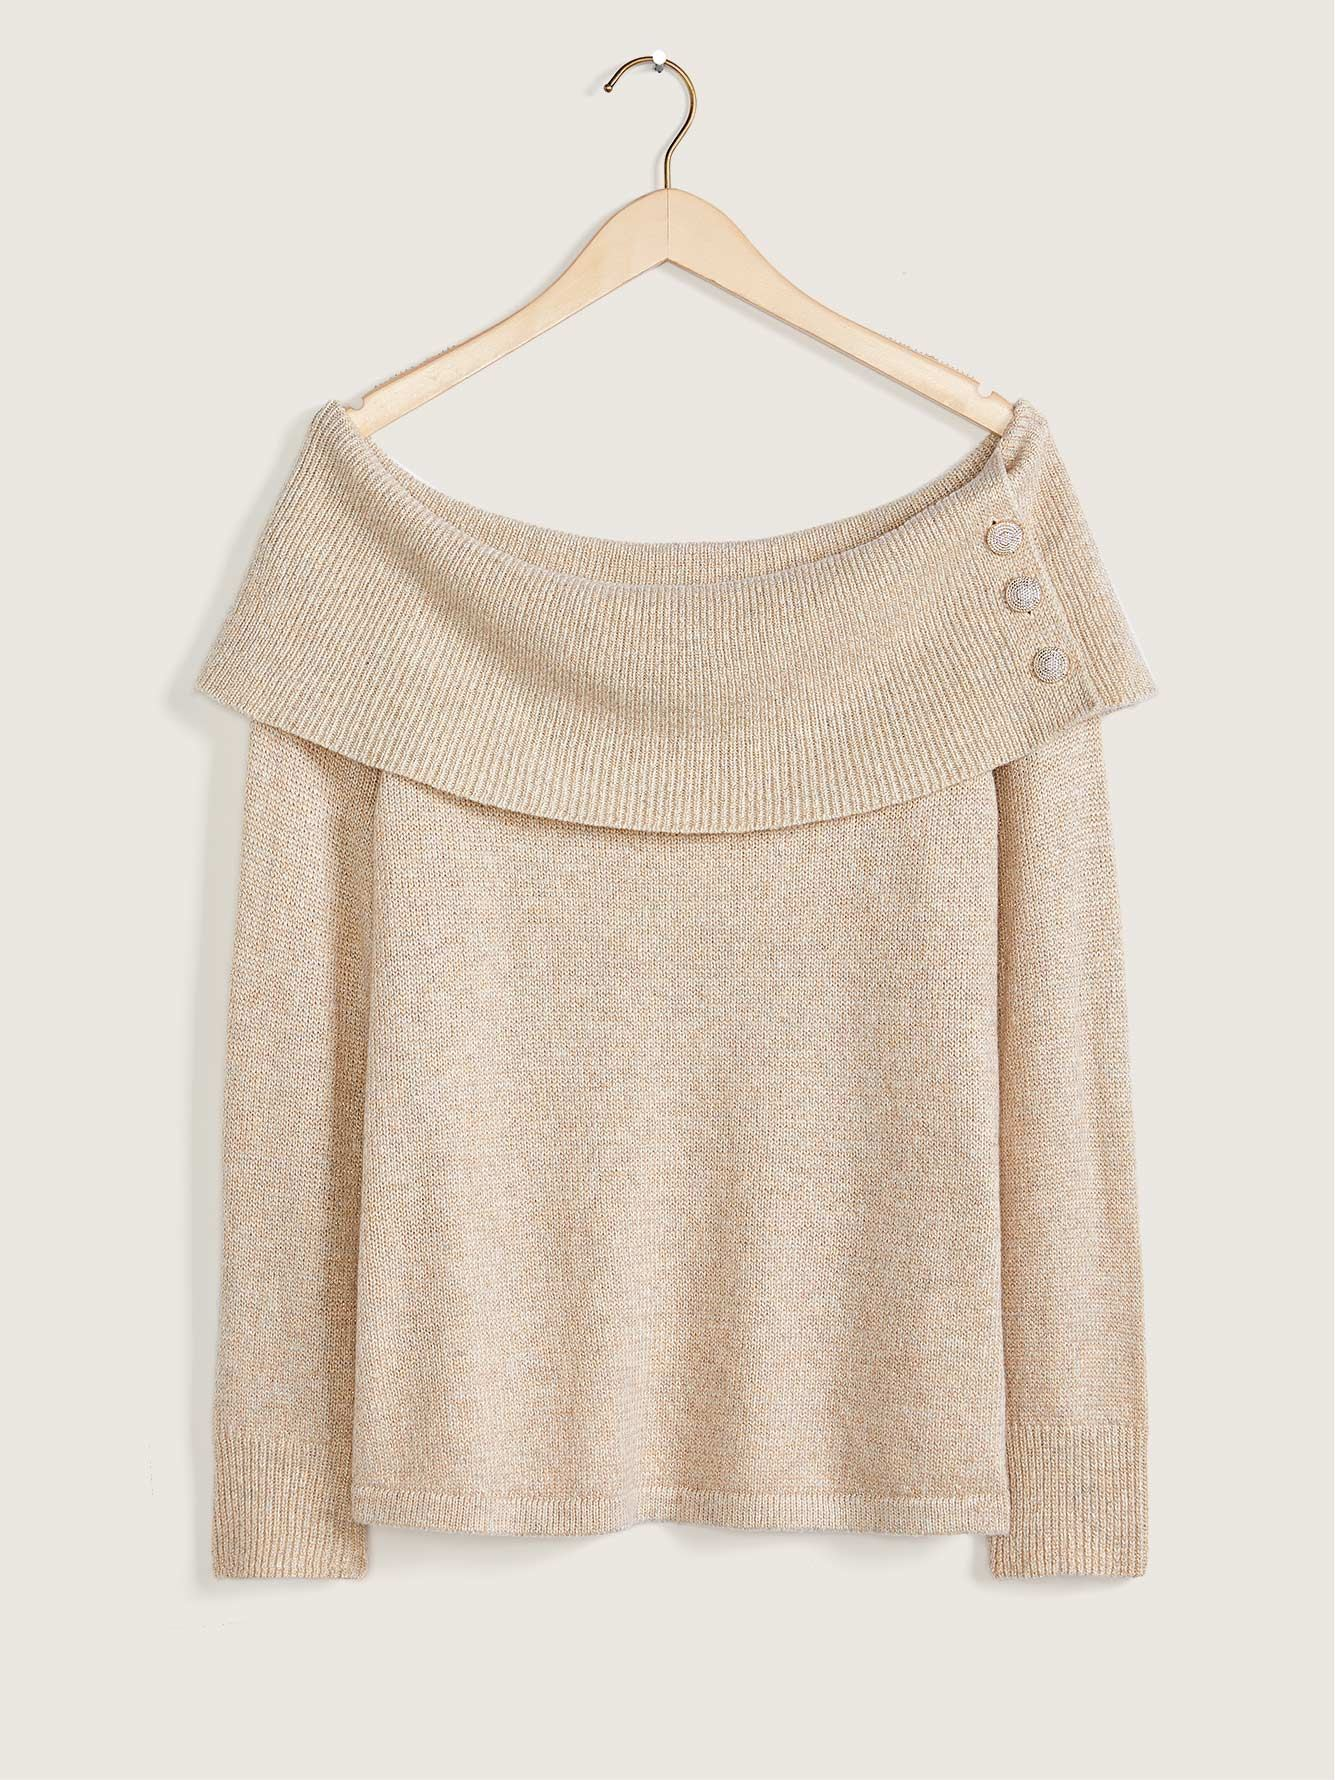 Off-Shoulder Sweater With Jewel Buttons - Addition Elle